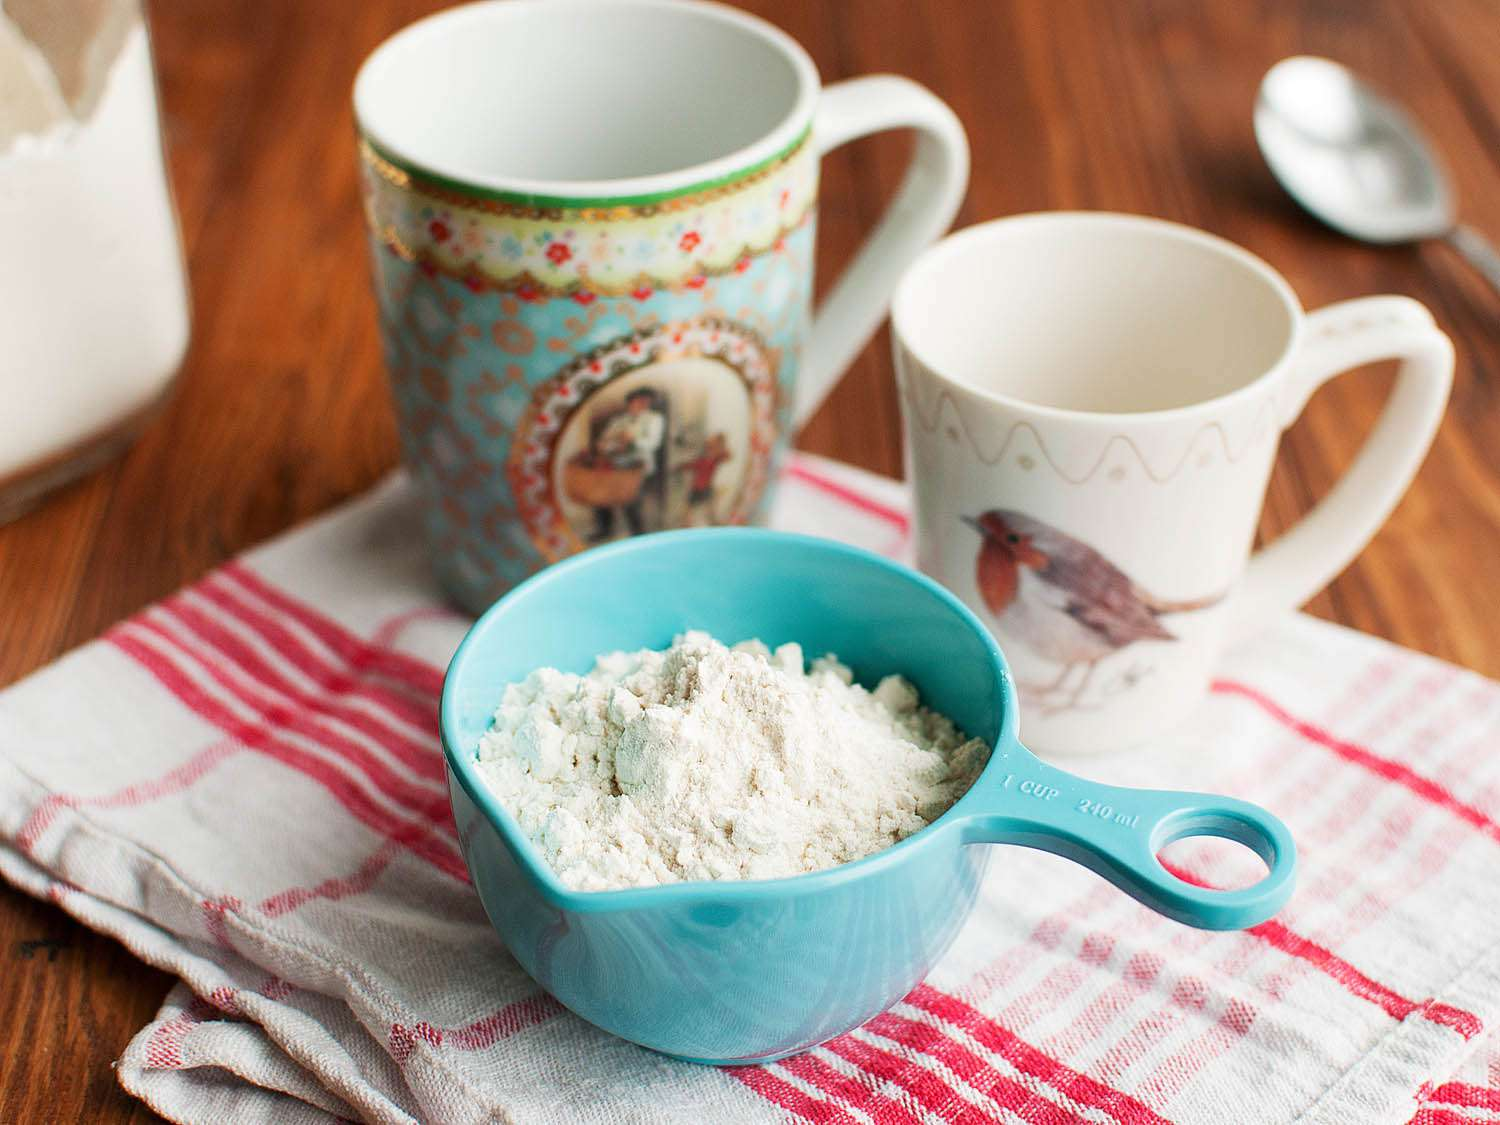 Measuring cups, one with flour in it